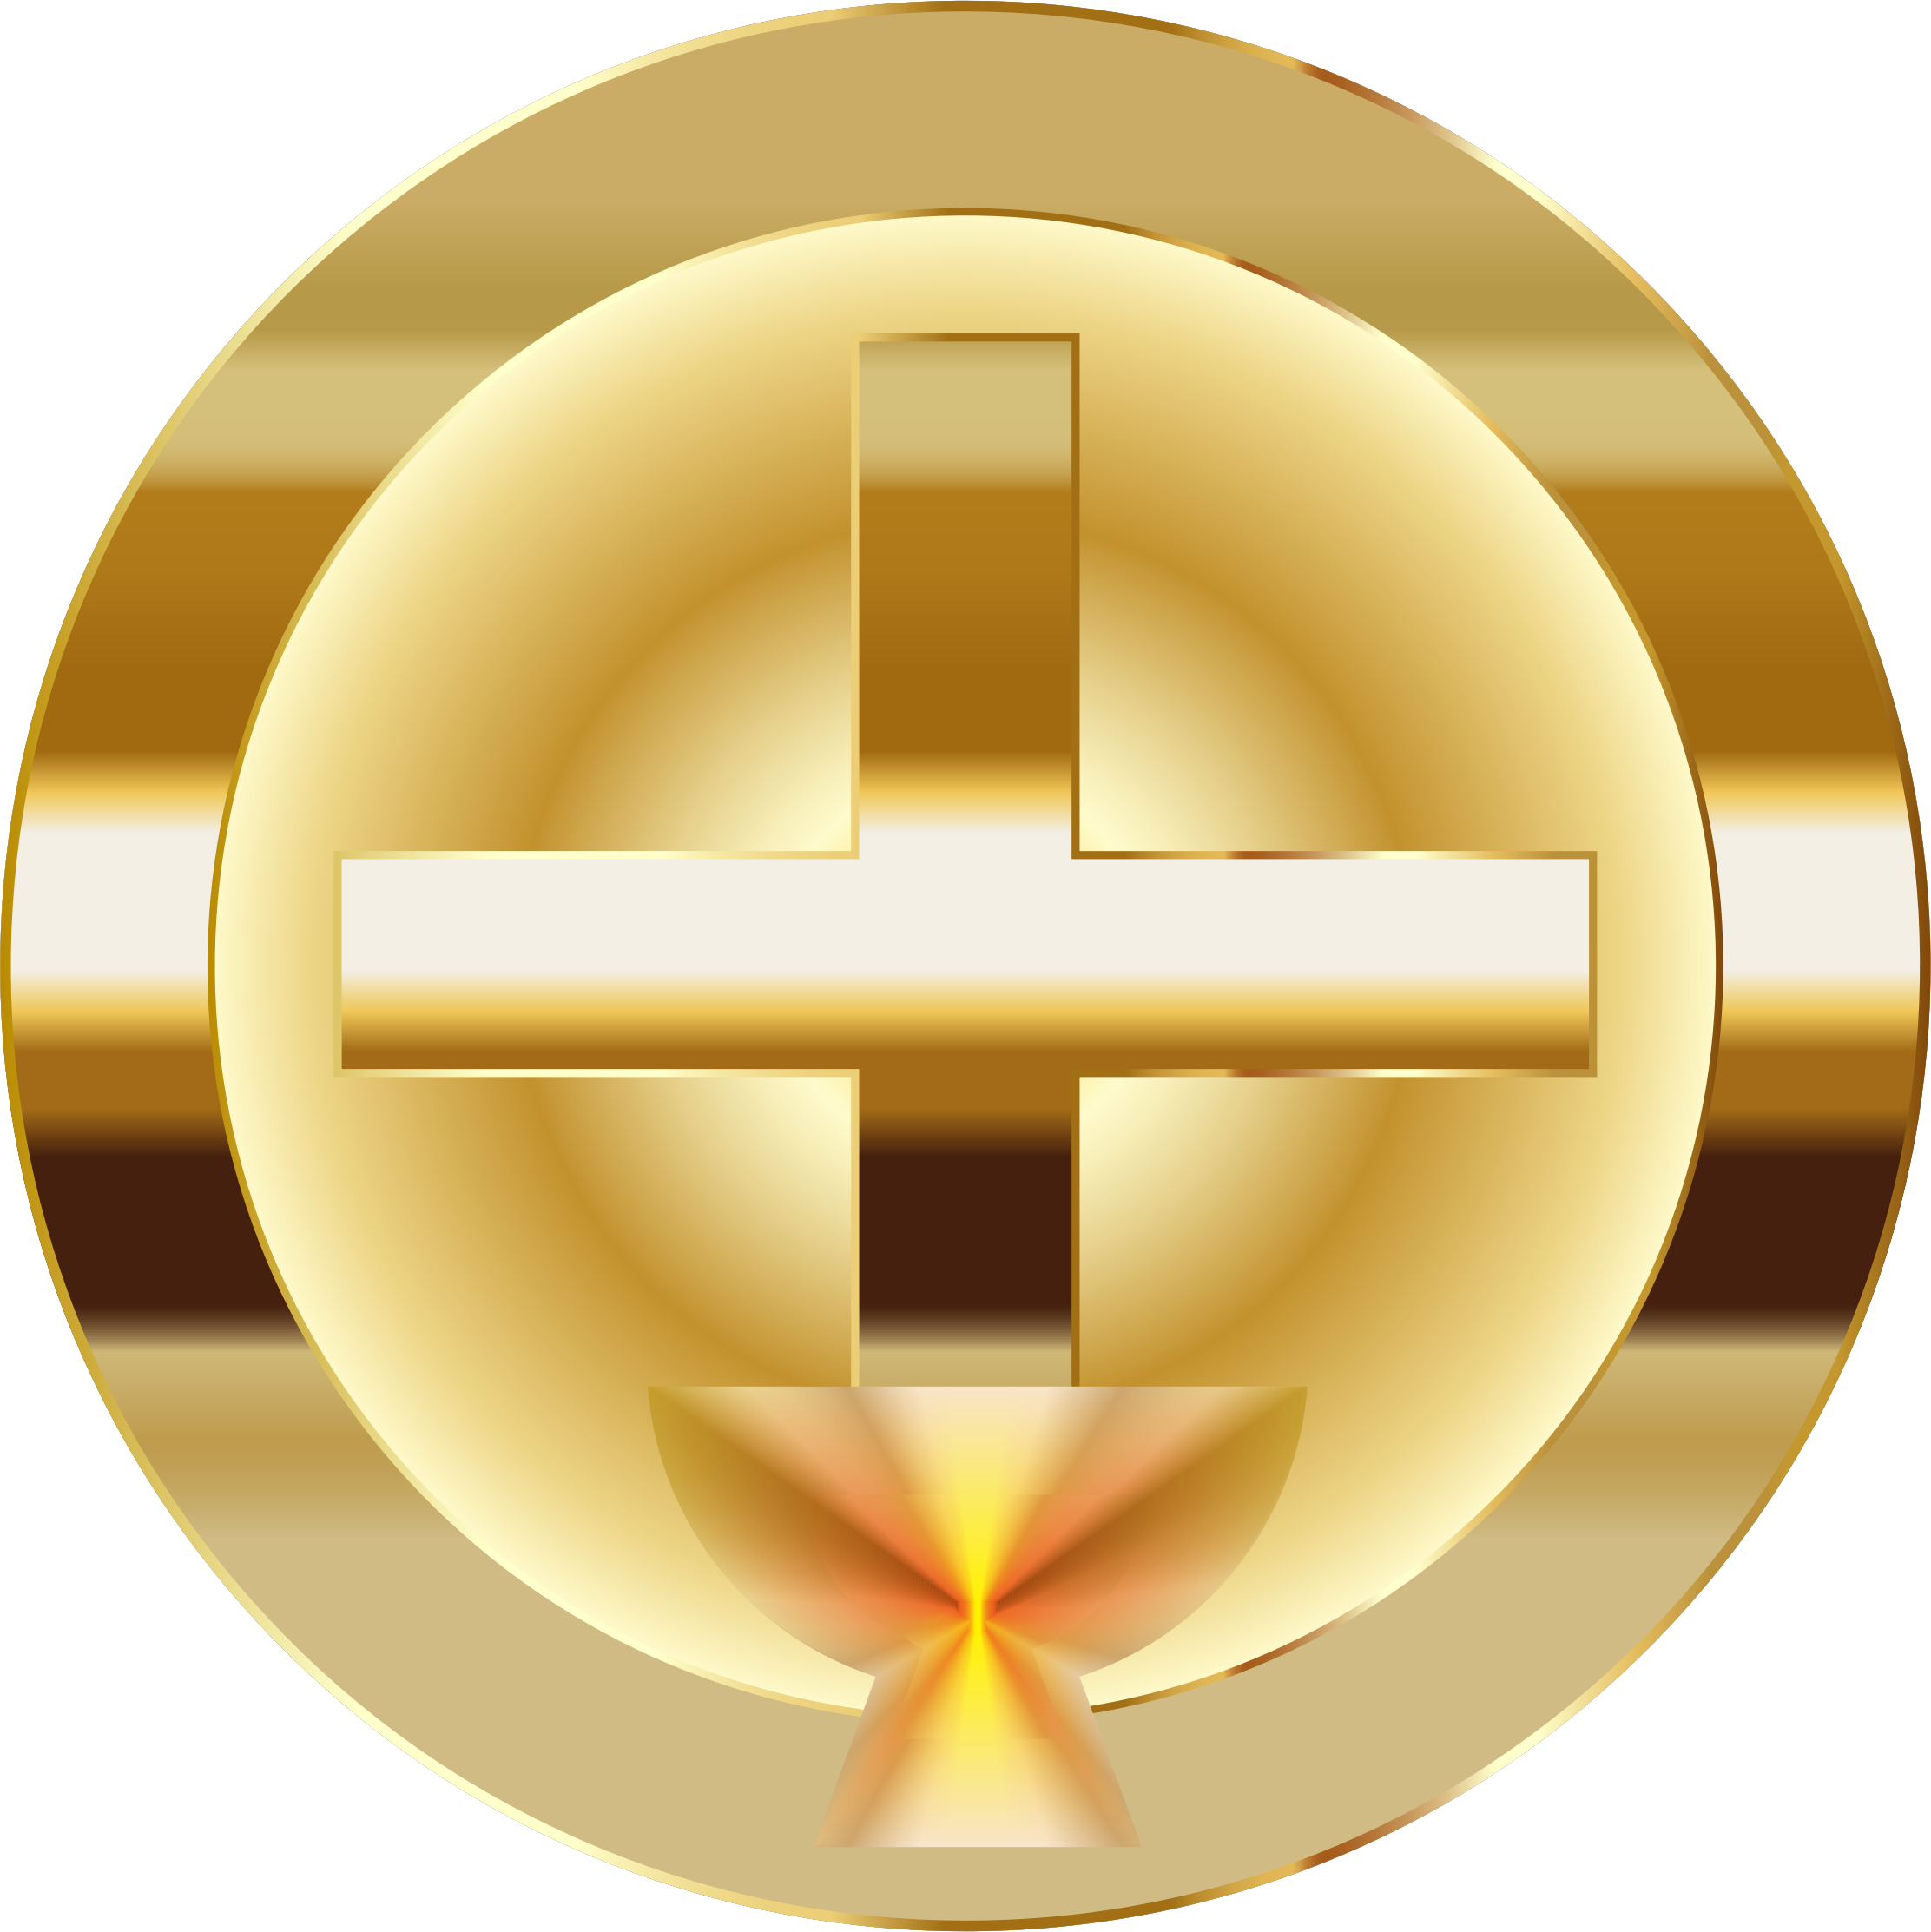 Cross church of god clipart picture freeuse Clipart - Gold Cross And Chalice picture freeuse